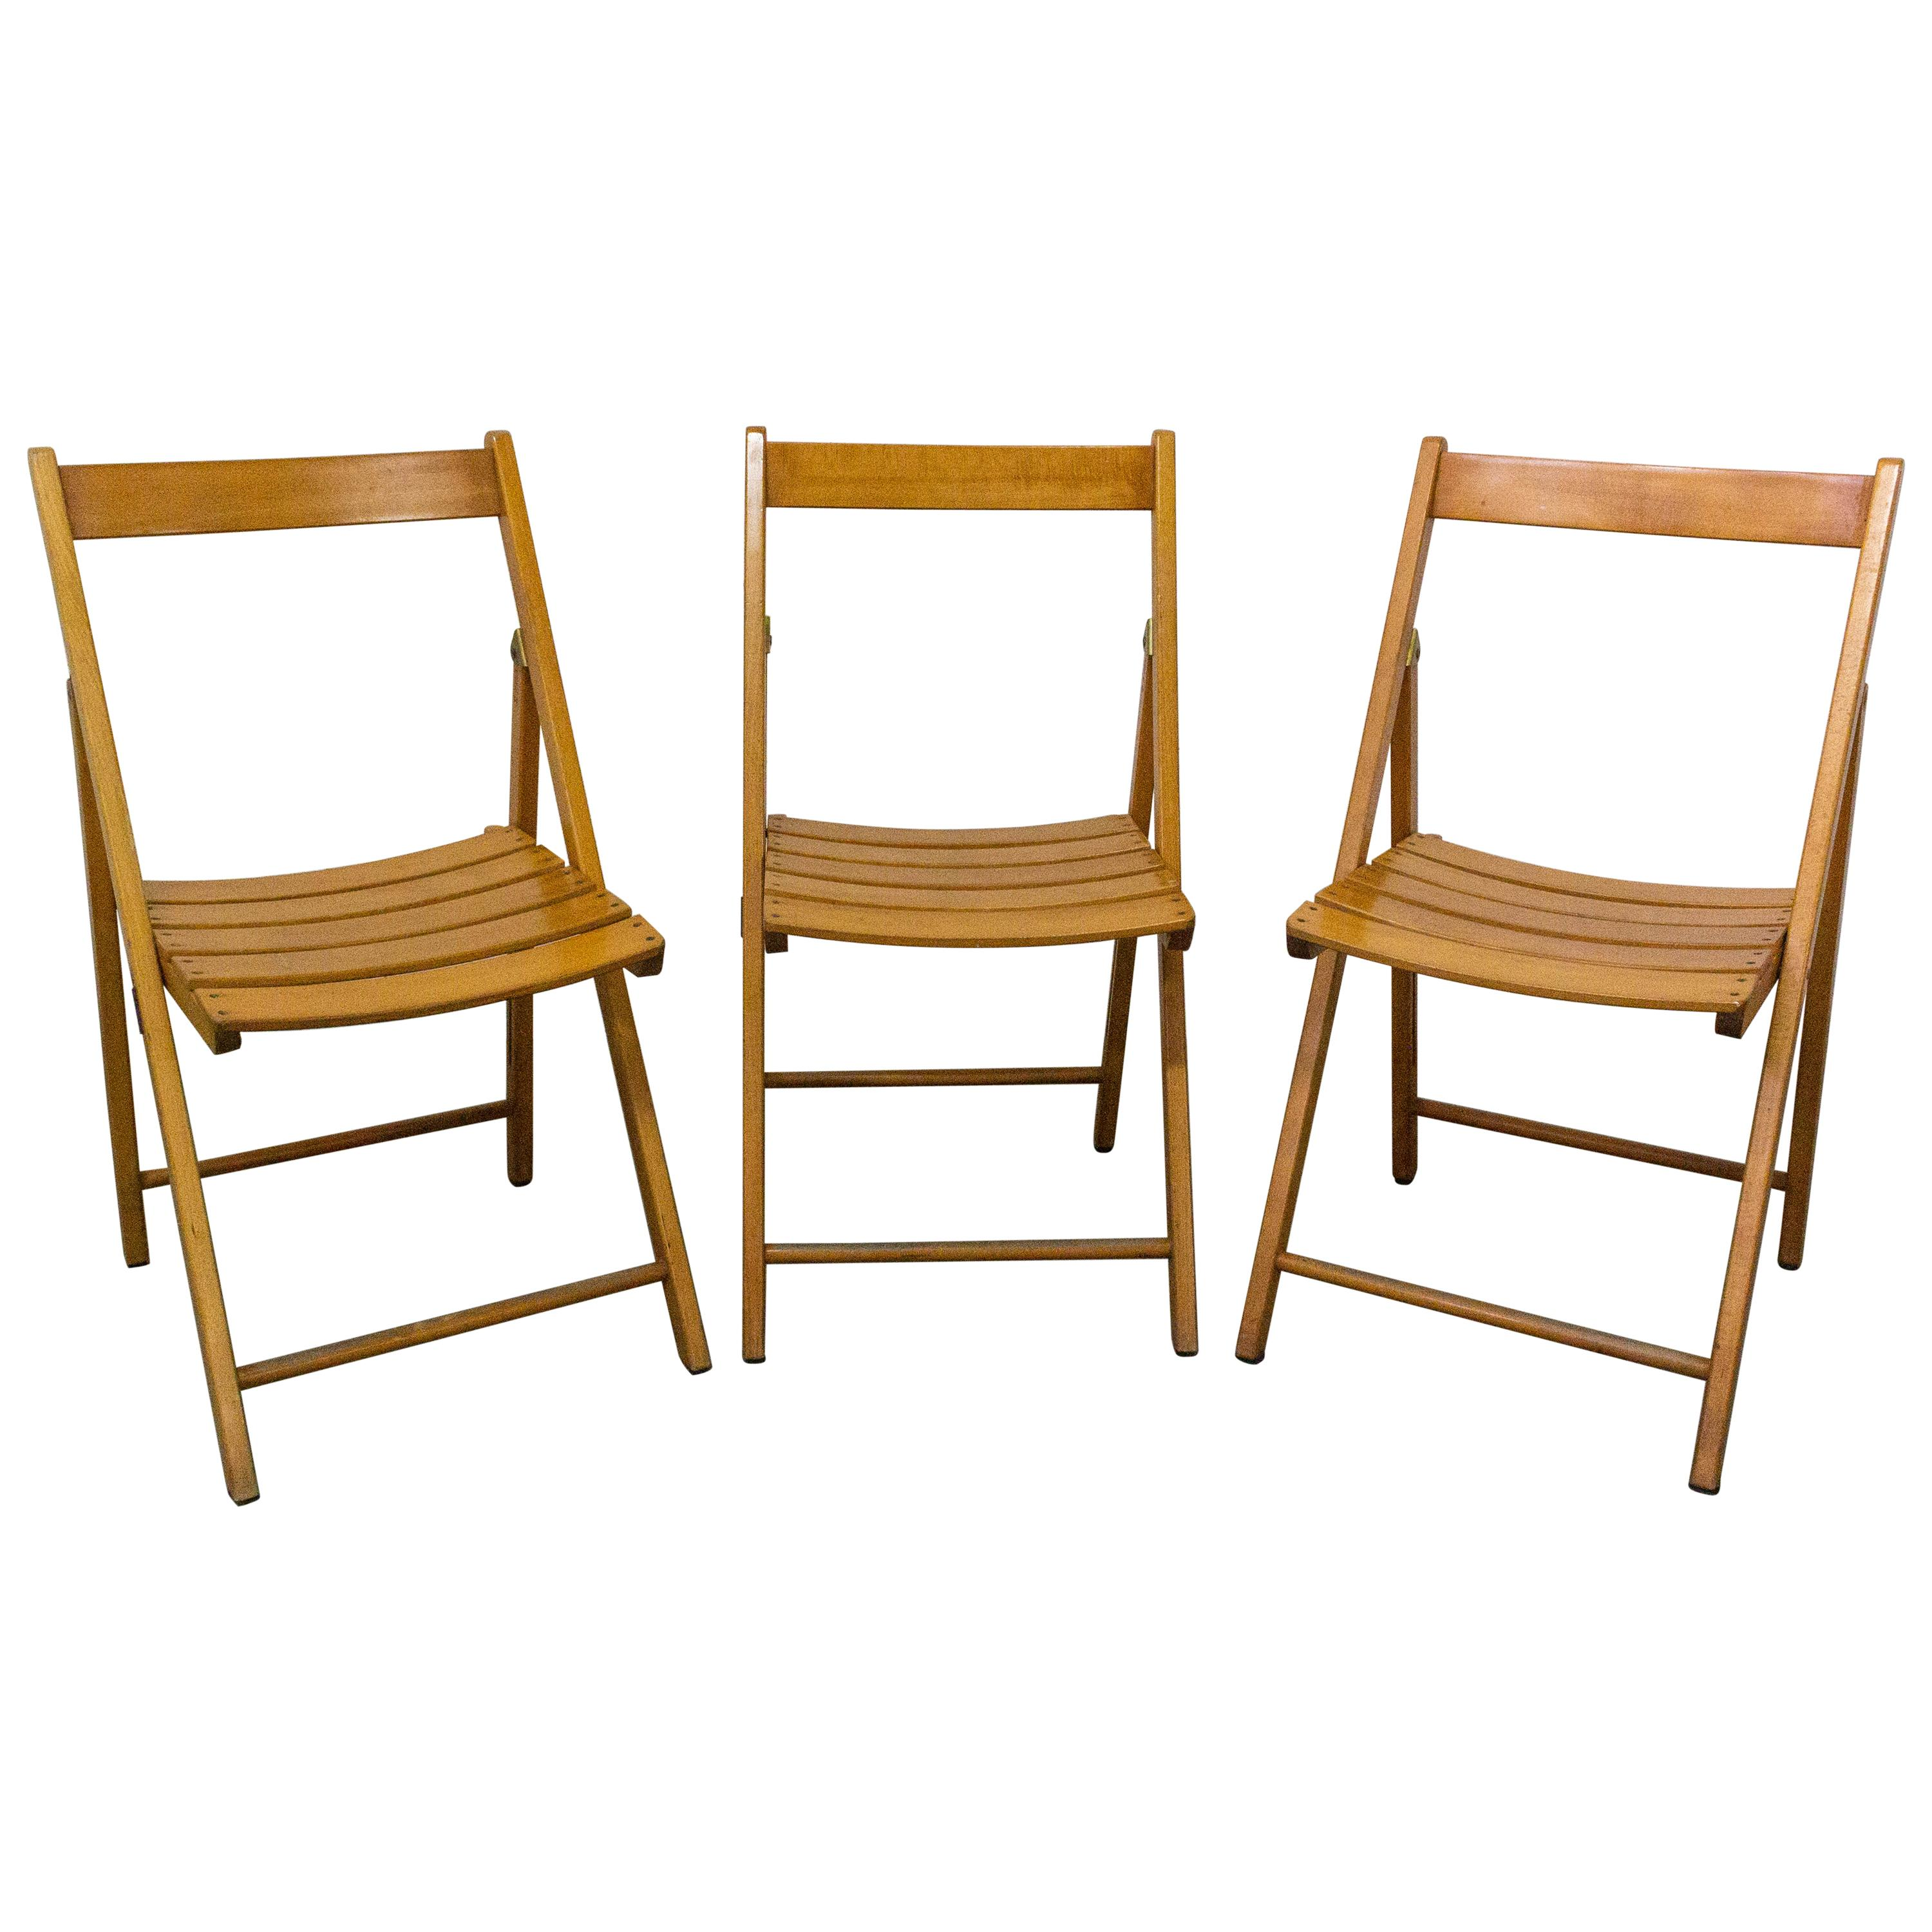 Three Midcentury French Patio, Garden Dining Folding Chairs by Clairitex